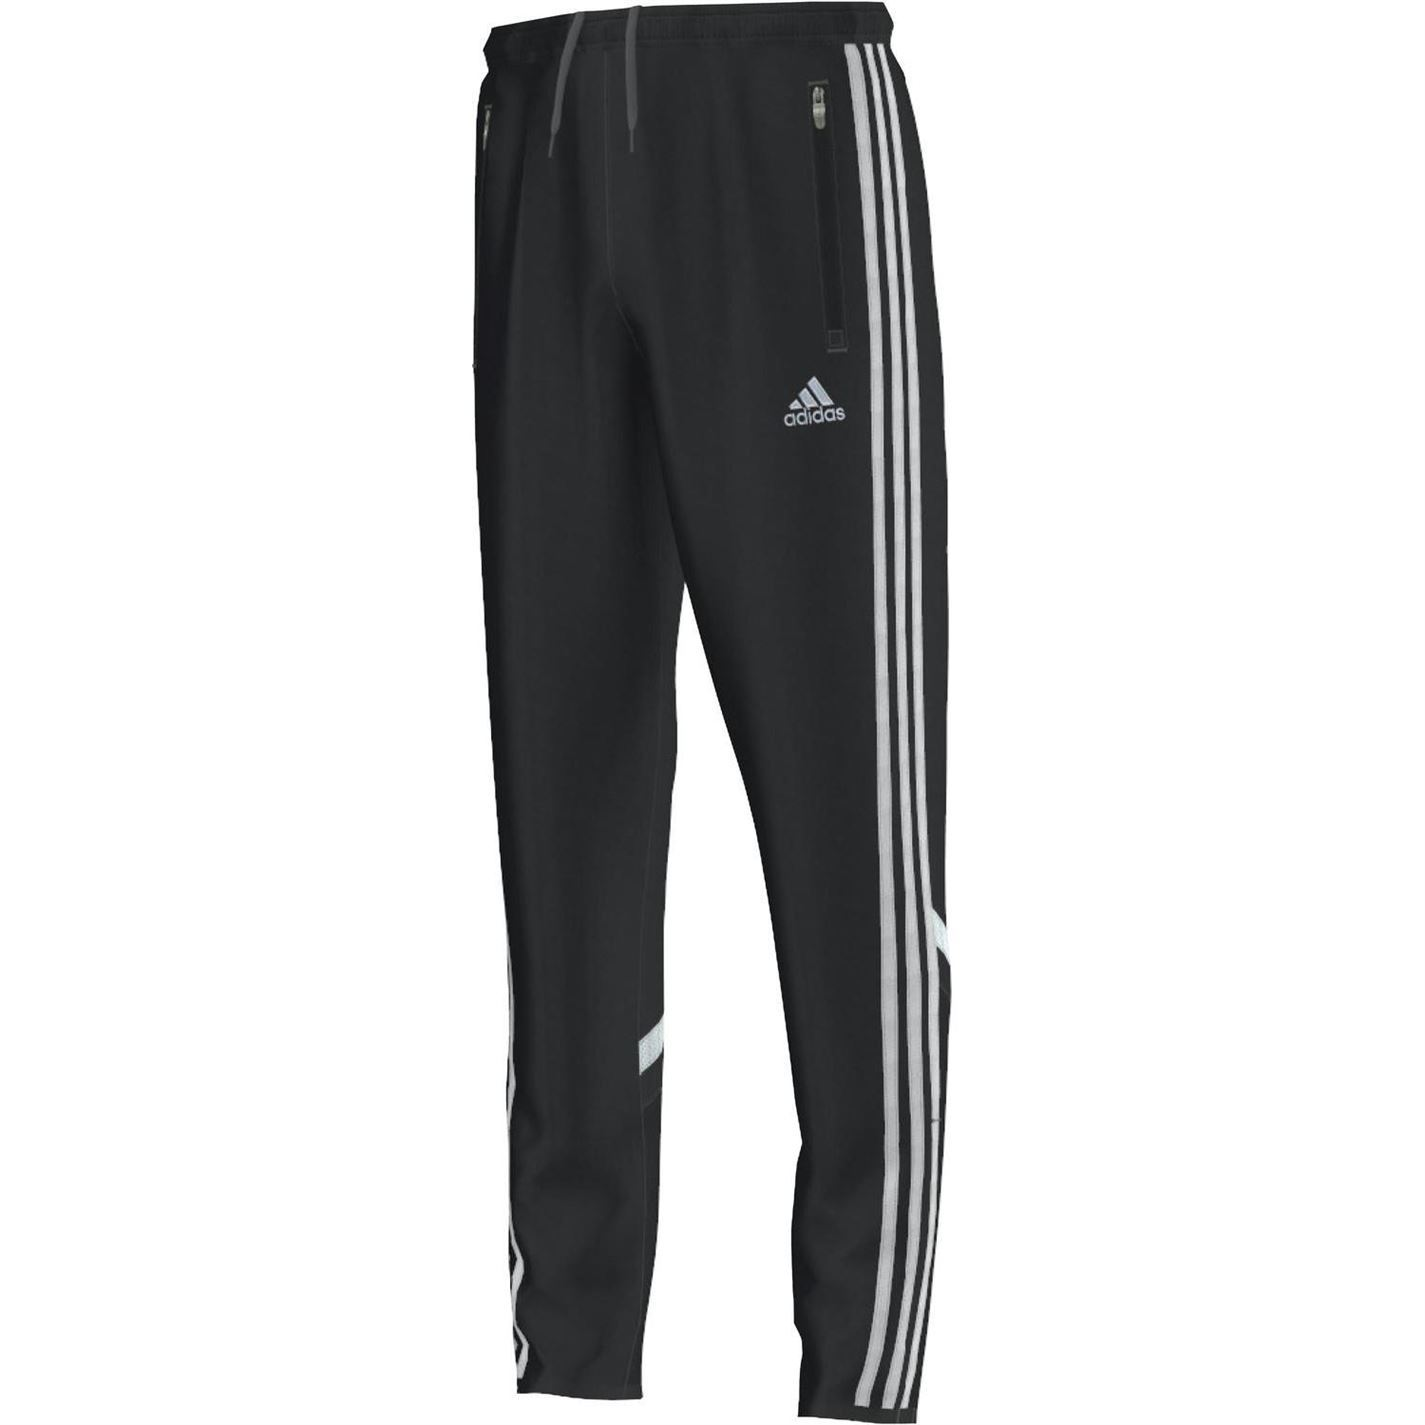 About Brown Tracksuit Bottoms Though tracksuits are available in sets, shoppers looking only for tracksuit bottoms can find them on eBay. These pants can be combined with differently coloured track jackets and jogging hoodies, with brown tracksuit bottoms being one of the most popular colours by virtue of being a colour that can be combined.